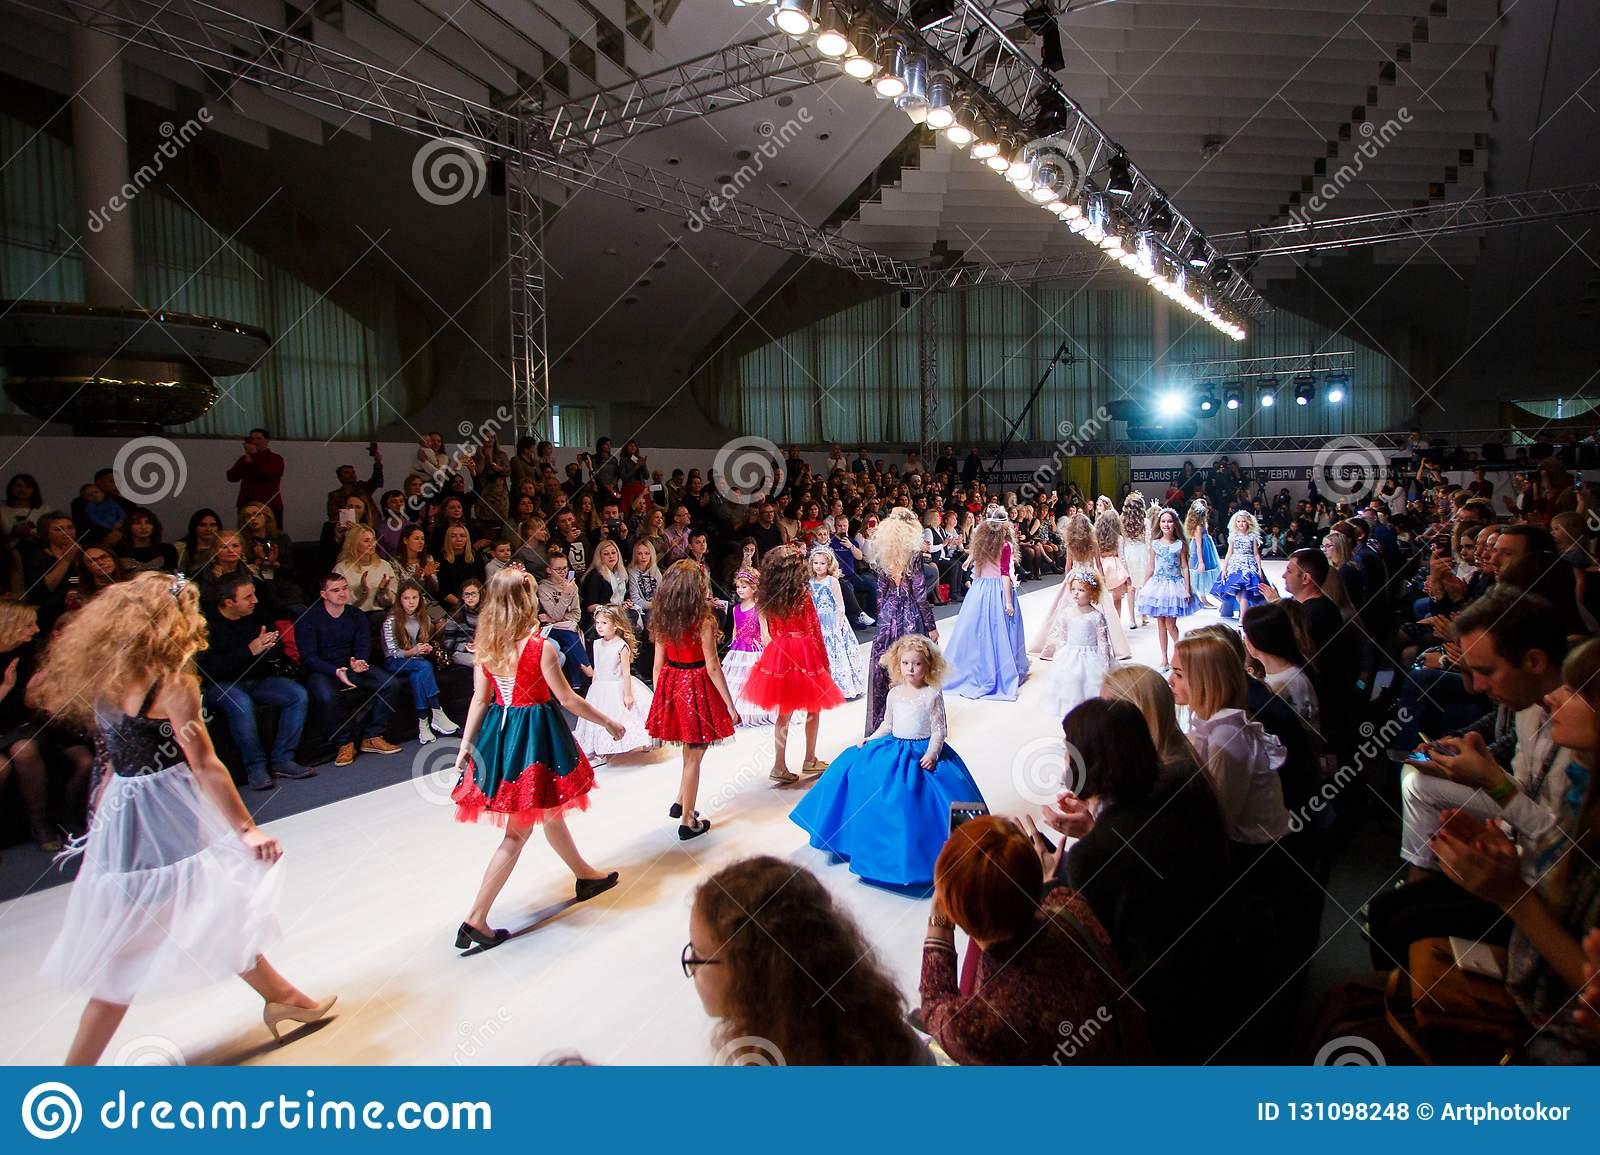 Kids models going down the catwalk at Fashion Week show